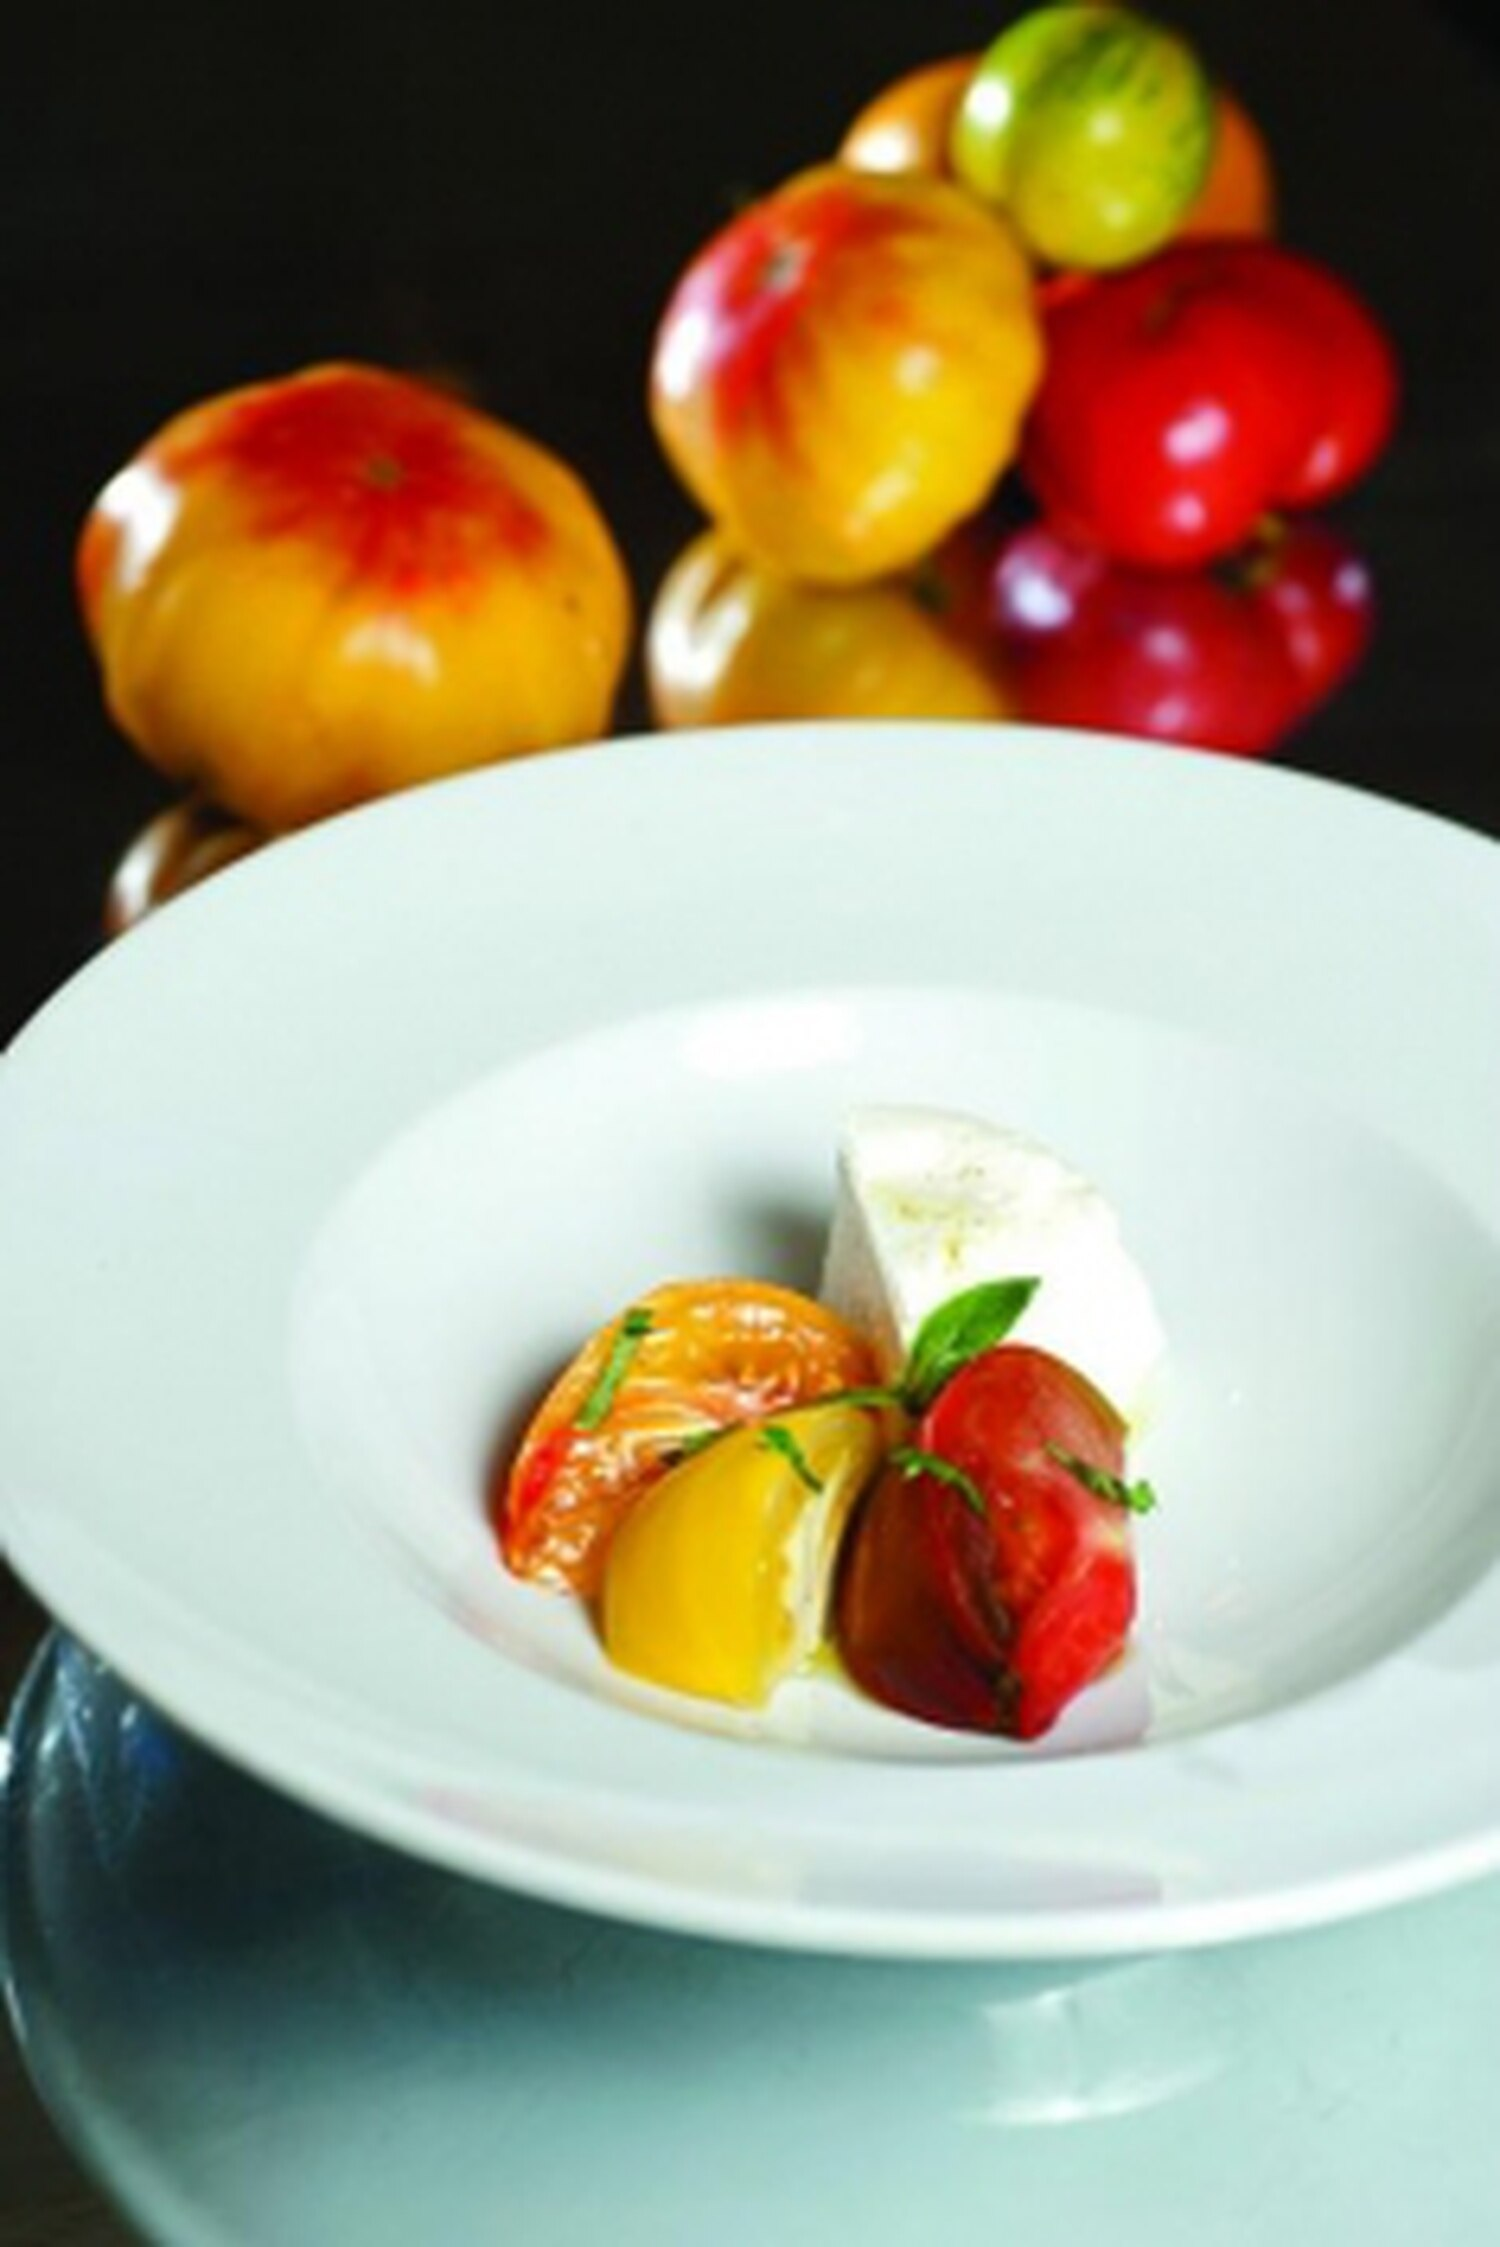 Burrata with heirloom tomatoes, basil and extra virgin olive oil Photo: Joy Godfrey